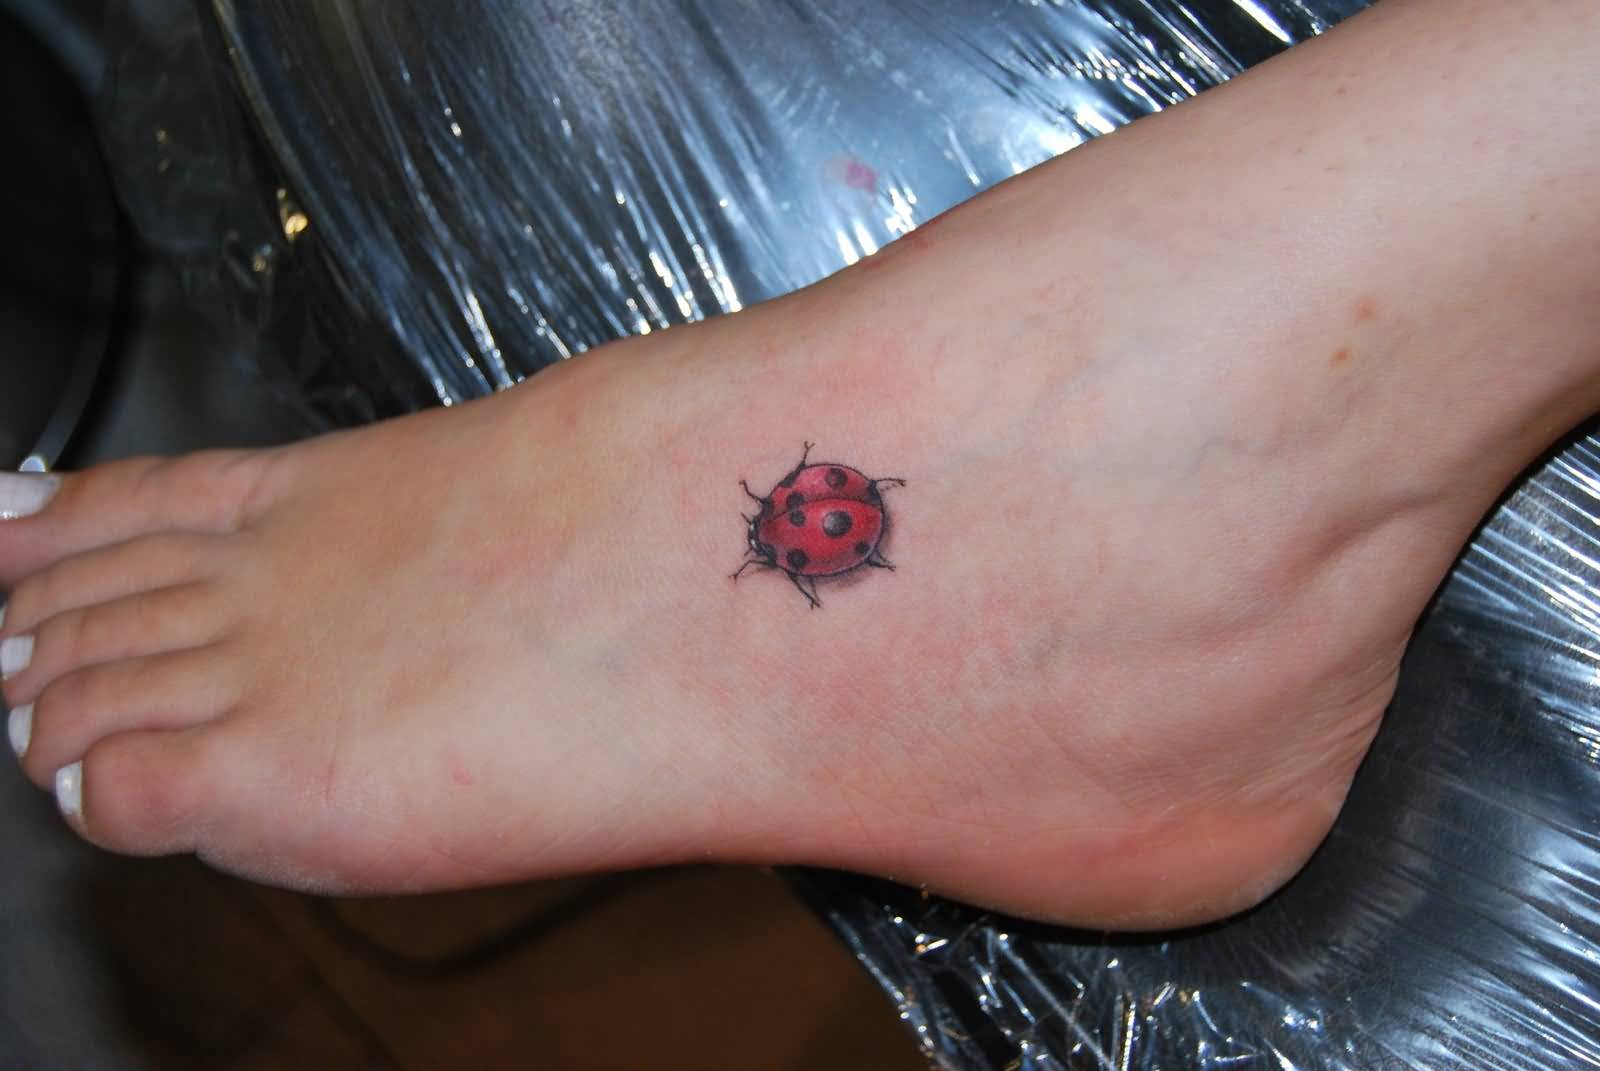 Fantastic Ladybug Tattoo On Foot Incredible